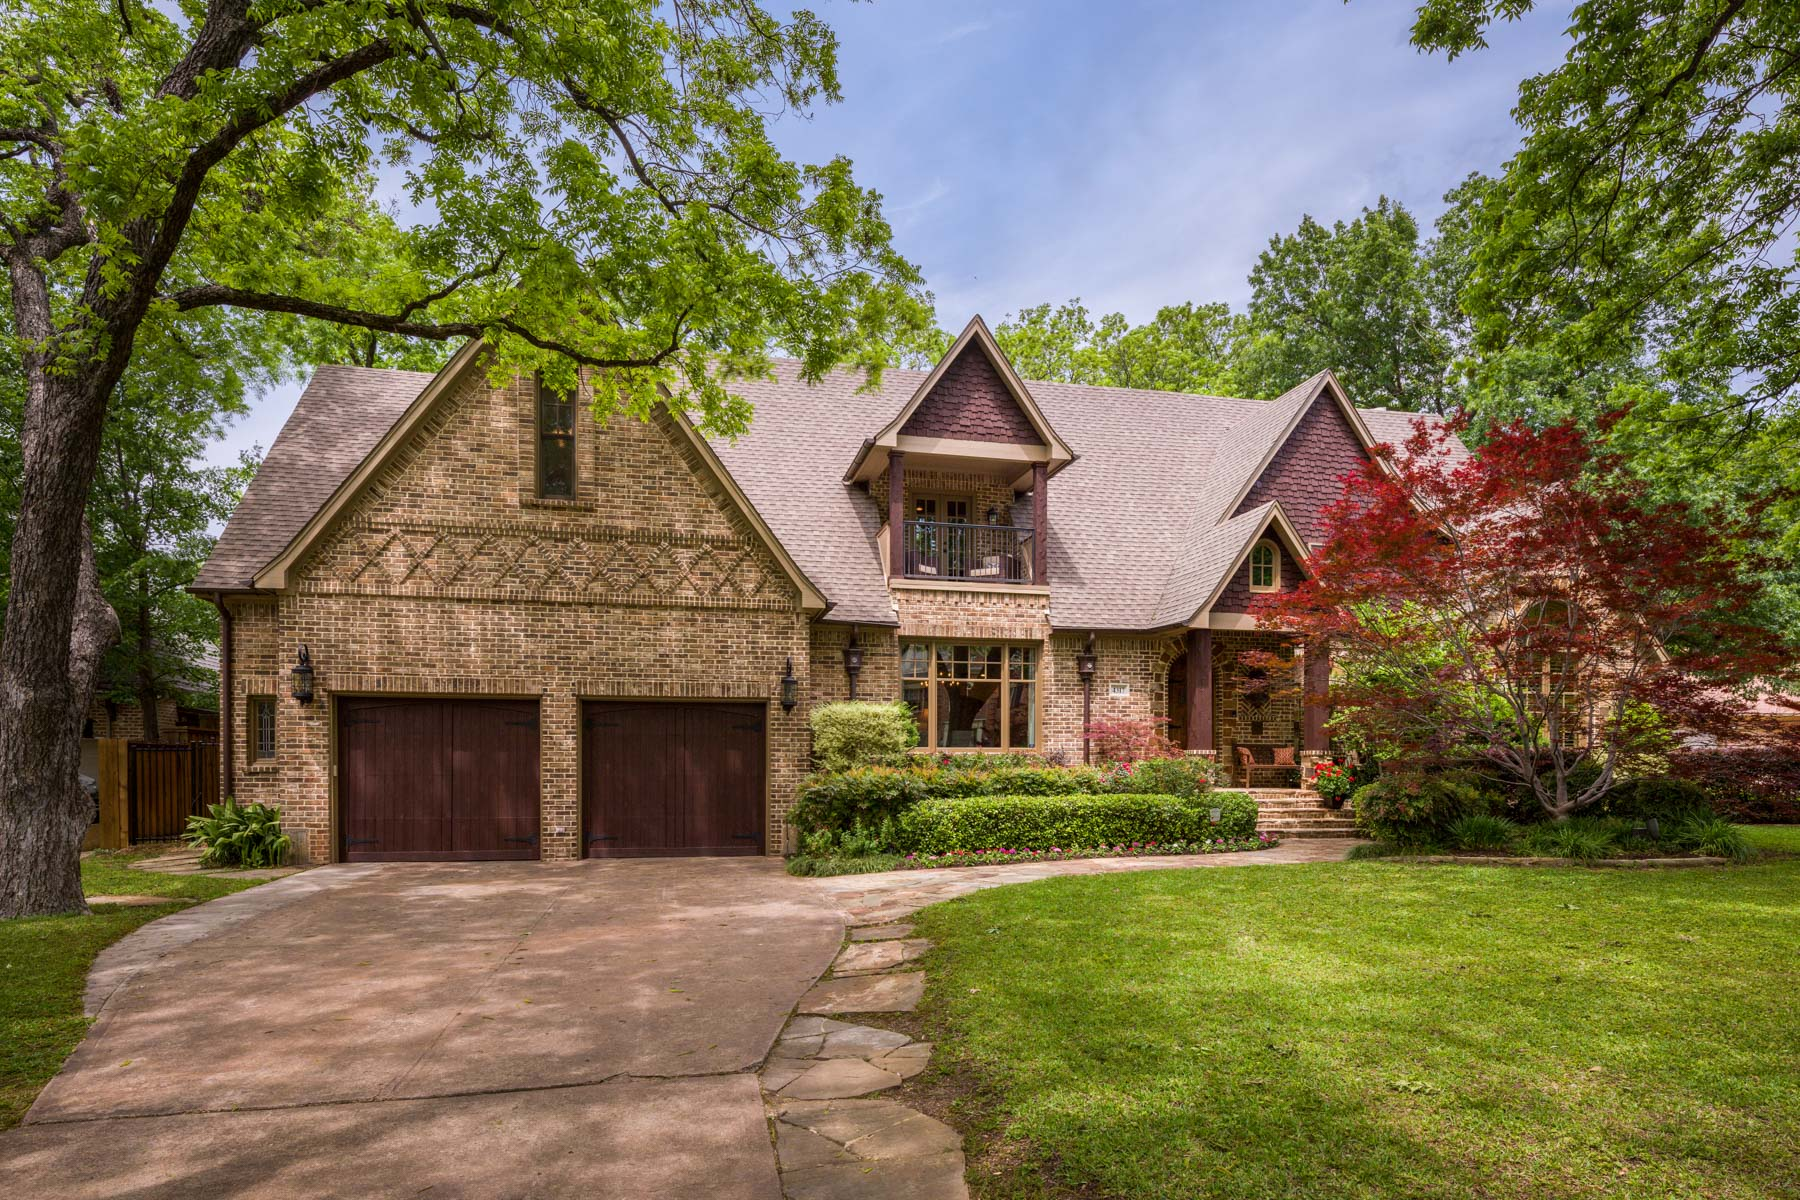 Moradia para Venda às Beautiful Home in Idyllic Preston Hollow Setting 4317 Manning Ln Dallas, Texas, 75220 Estados Unidos